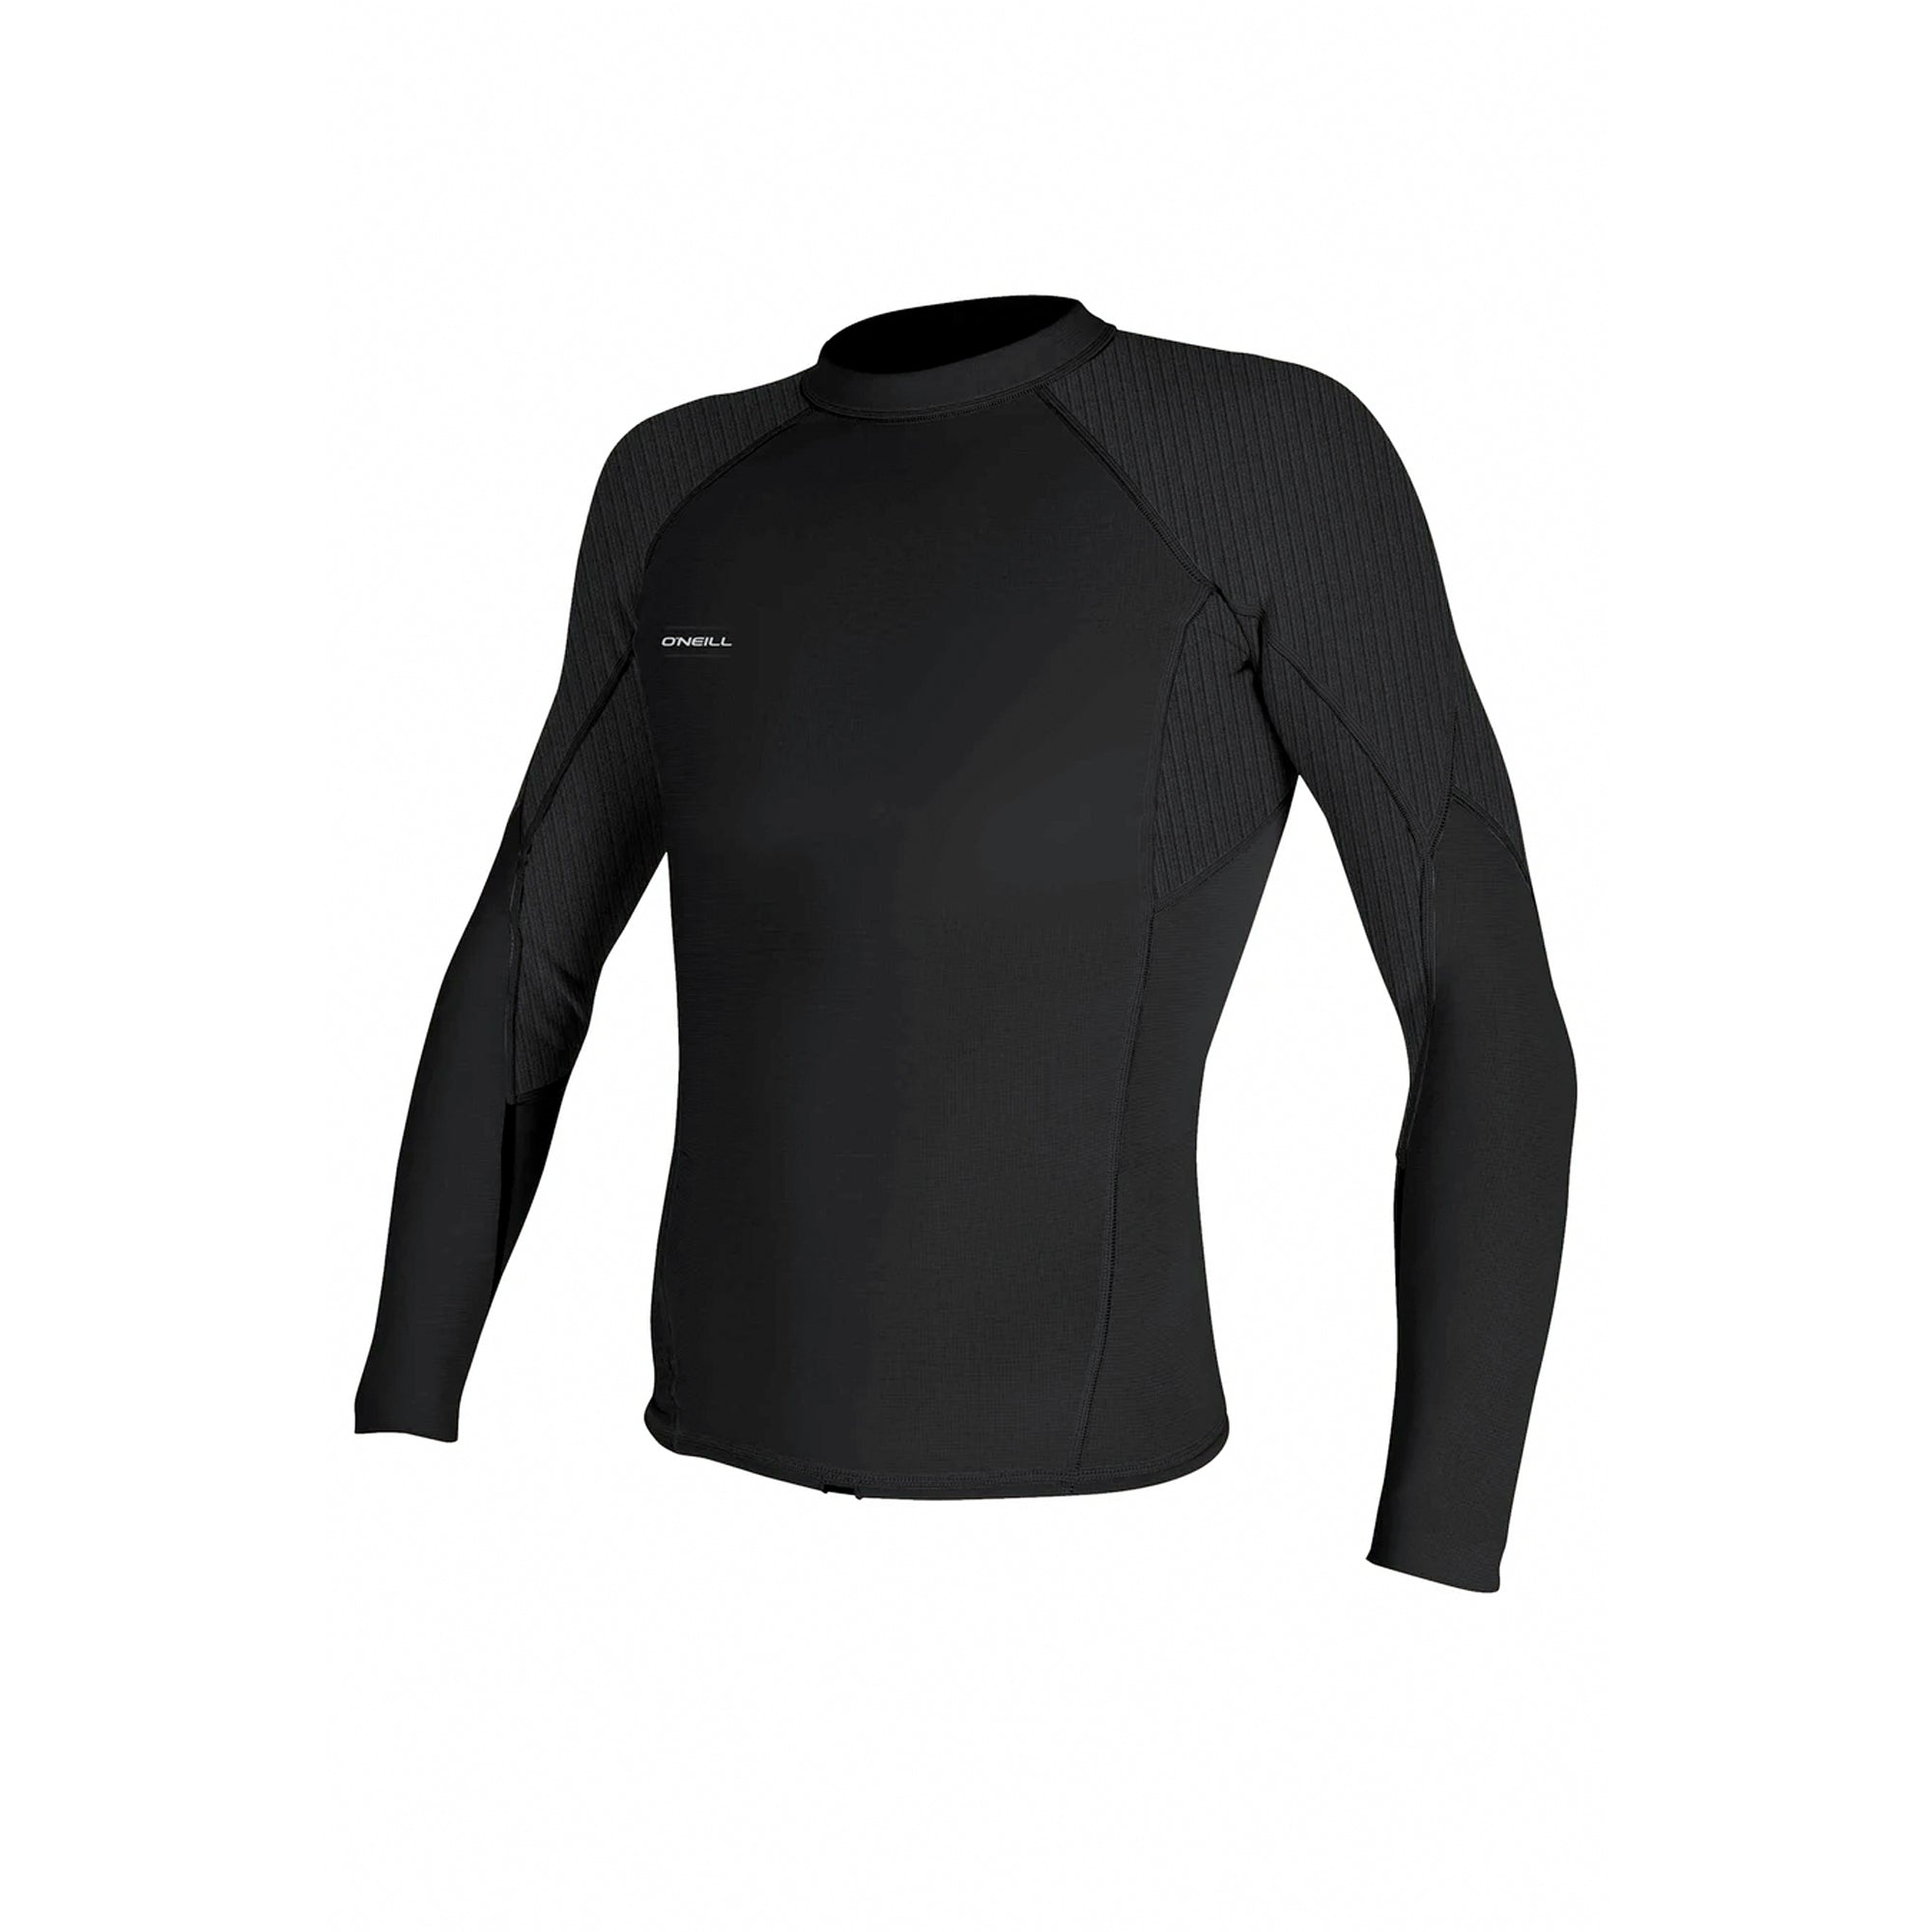 O'Neill Hyperfreak 1.5mm Men's L/S Wetsuit Top